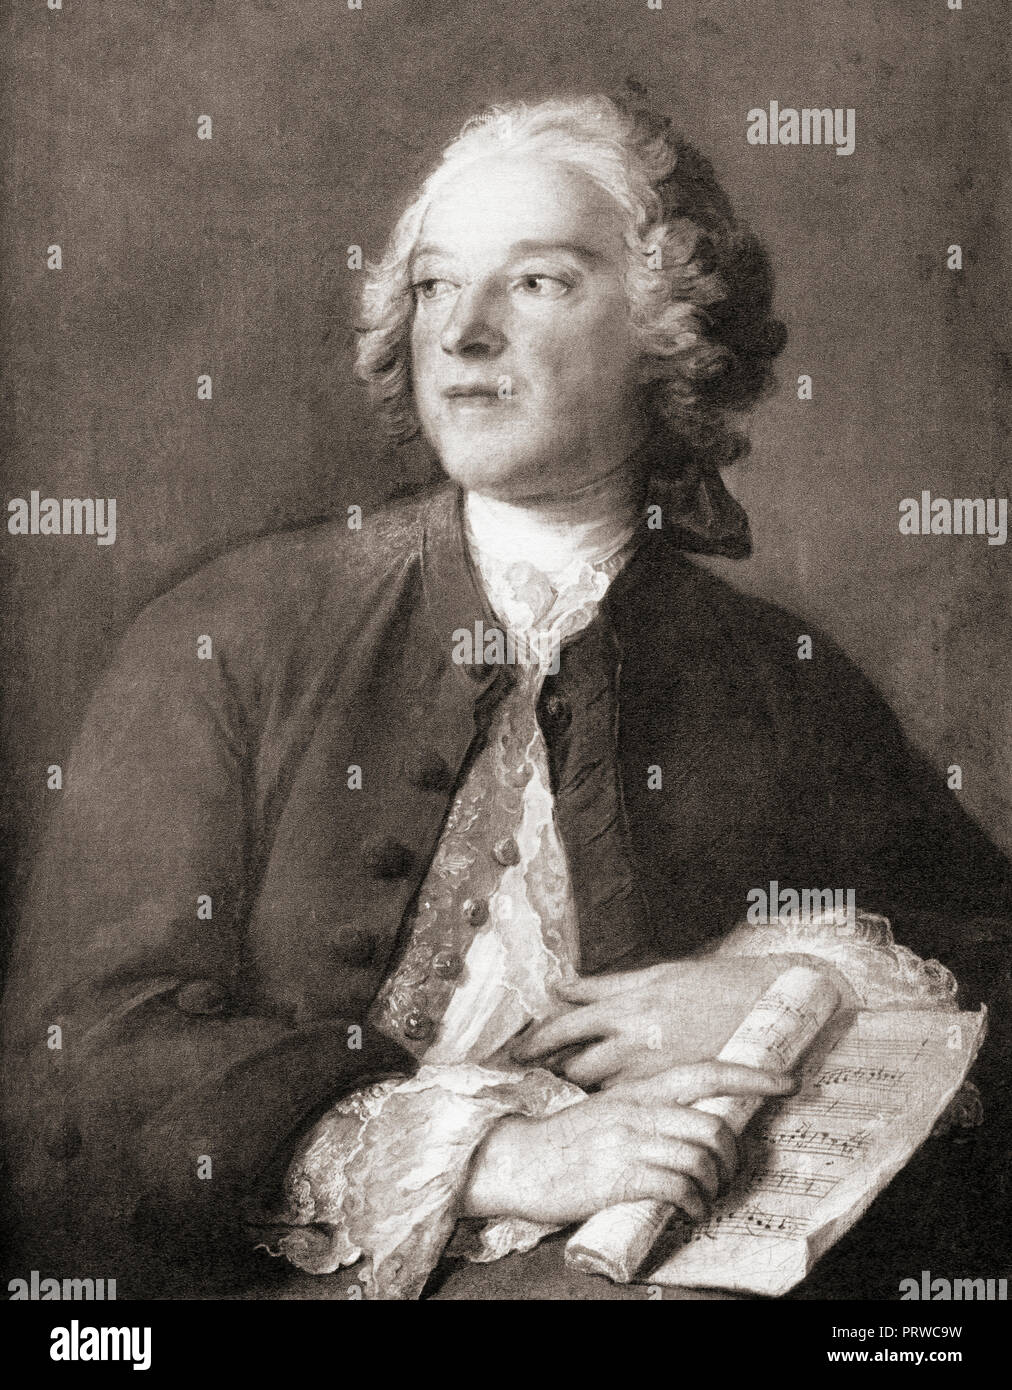 Pierre-Augustin Caron de Beaumarchais, 1732 – 1799.  French watchmaker, inventor, playwright, musician, diplomat, spy, publisher, horticulturist, arms dealer, satirist, financier, and revolutionary. - Stock Image